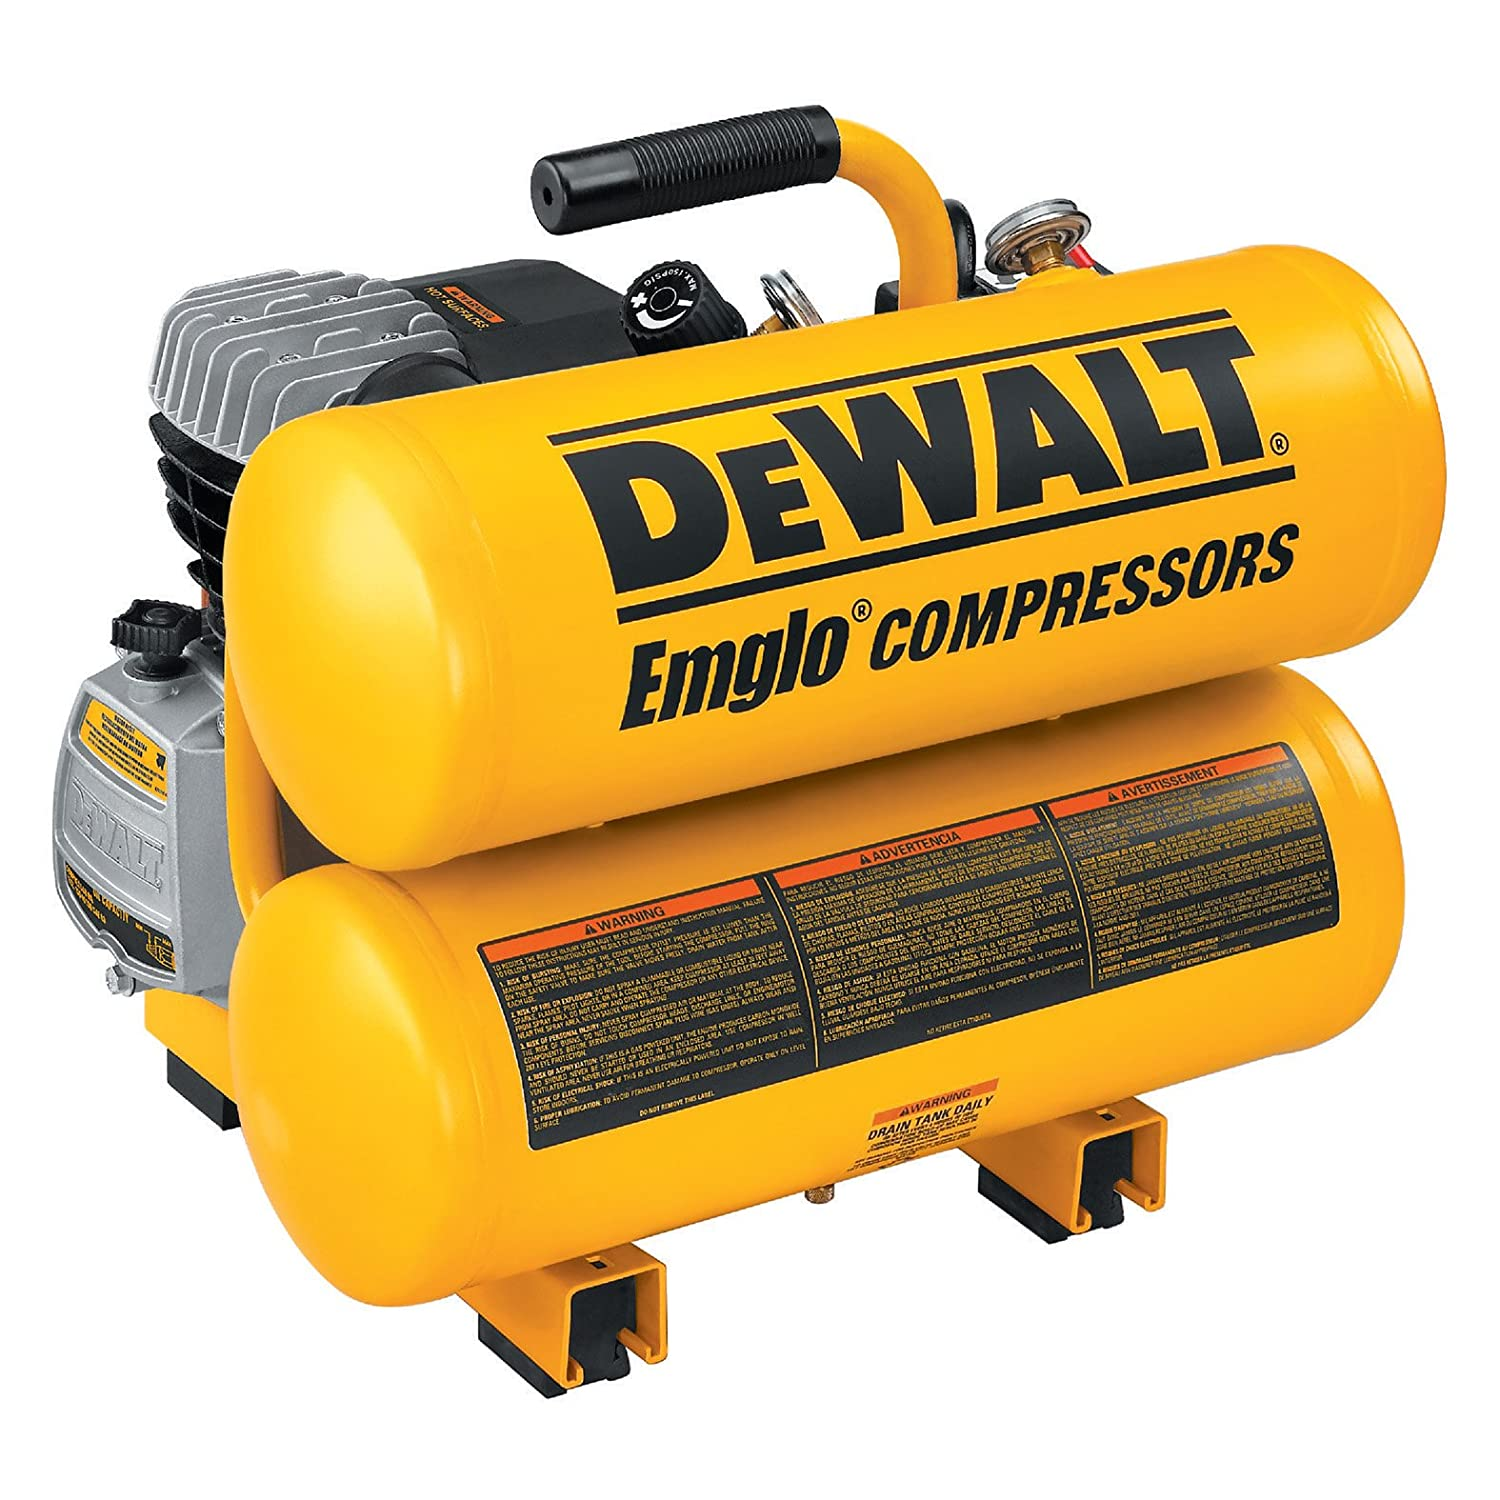 Amazon.com: DEWALT D55153 15 Amp 1-Horsepower 4 Gallon Oiled Twin Hot Dog  Compressor: Home Improvement